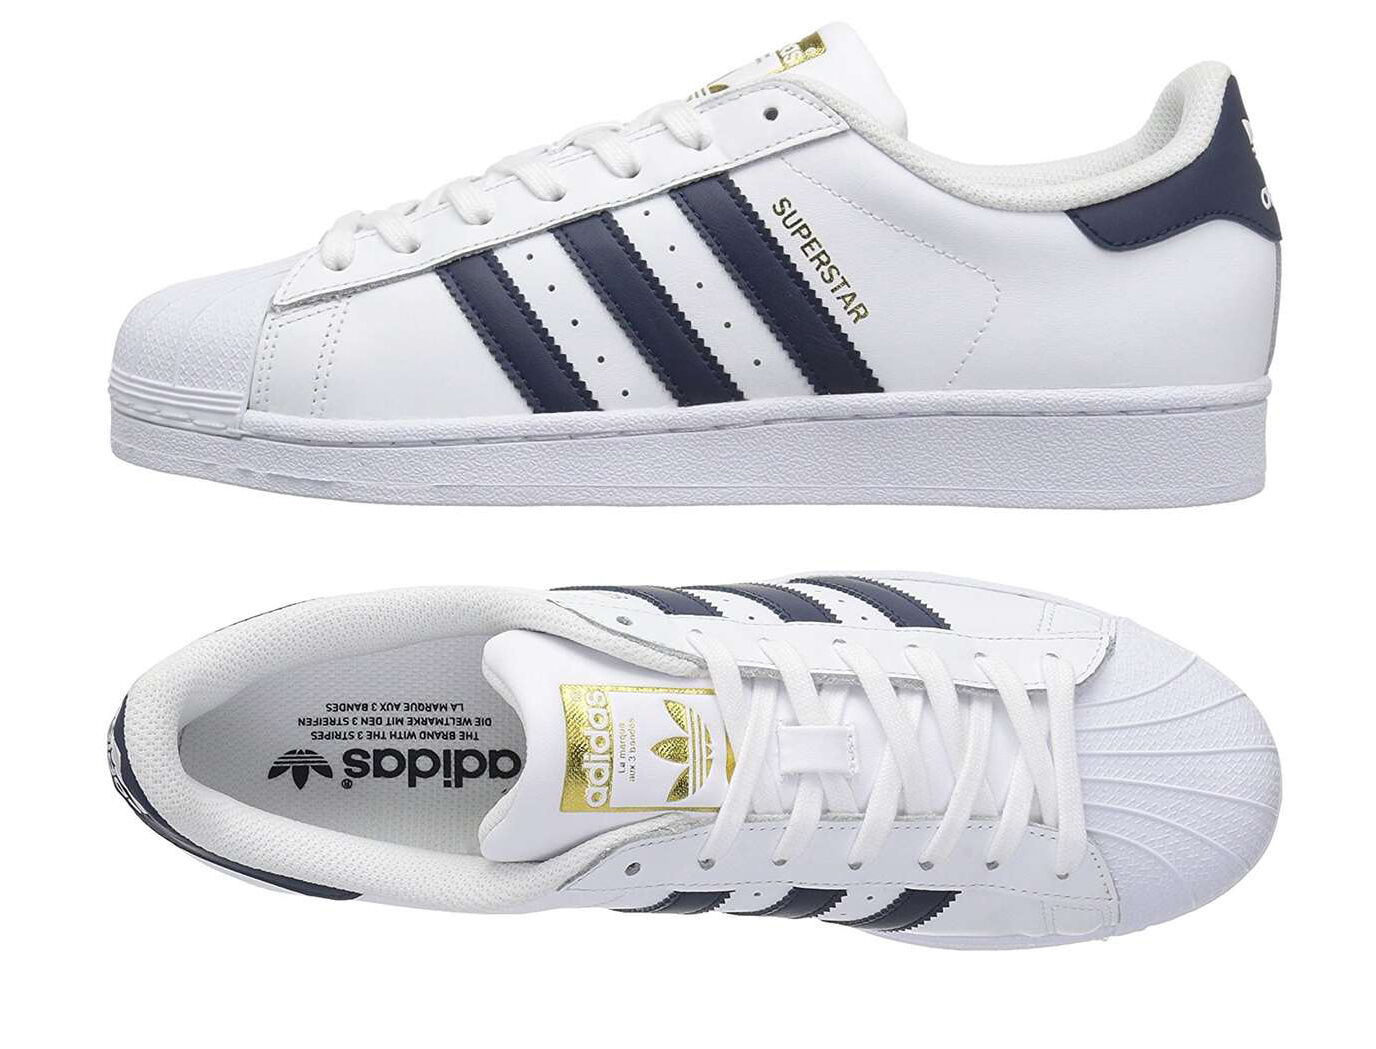 buy popular f249c 4a529 adidas Super Foundation Big Kids S81014 White Navy Gold Shoes Youth Size 5    eBay